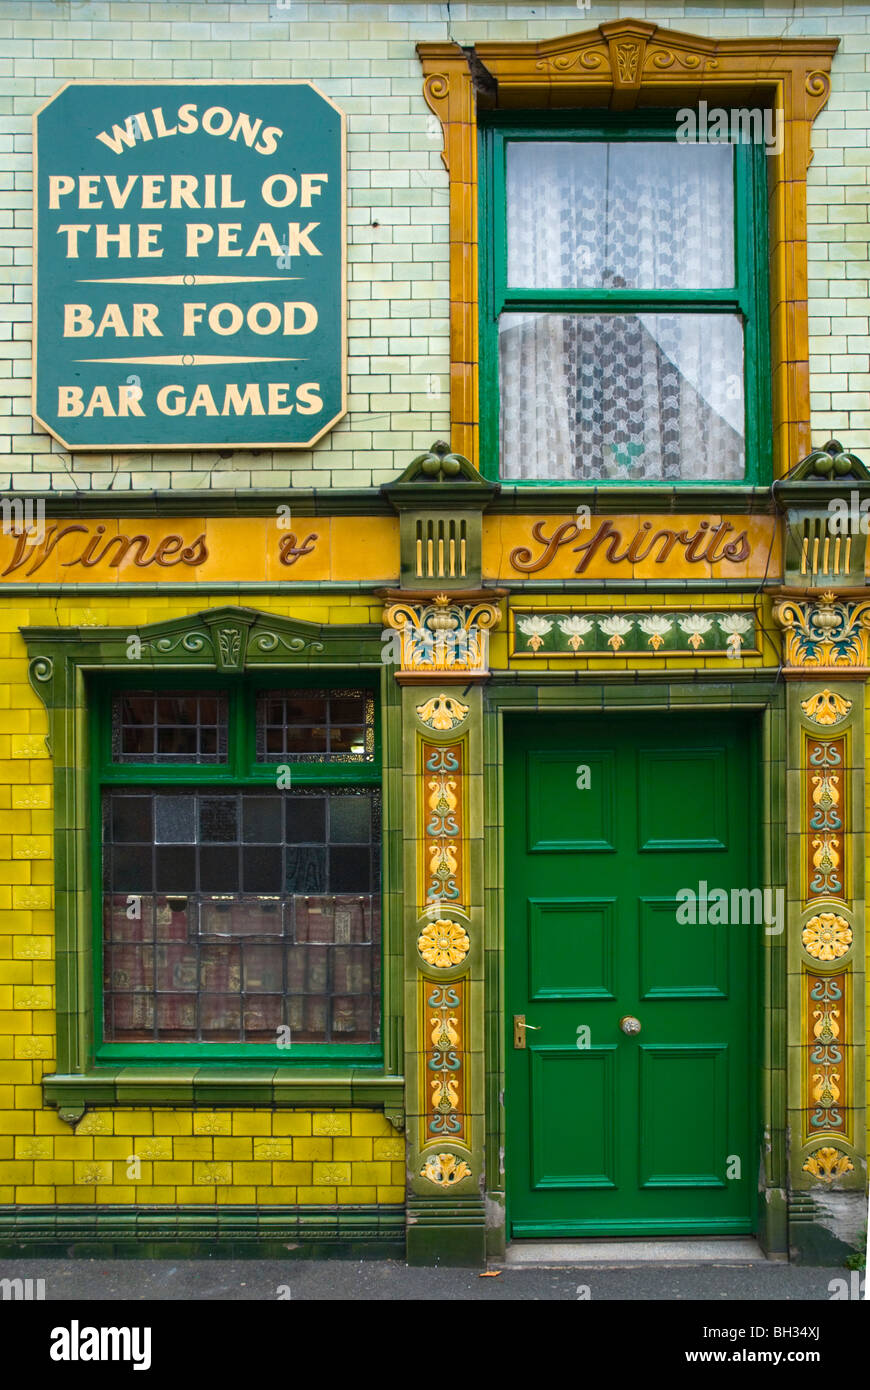 Peveril of the Peak pub exterior Castlefield central Manchester England UK Europe - Stock Image